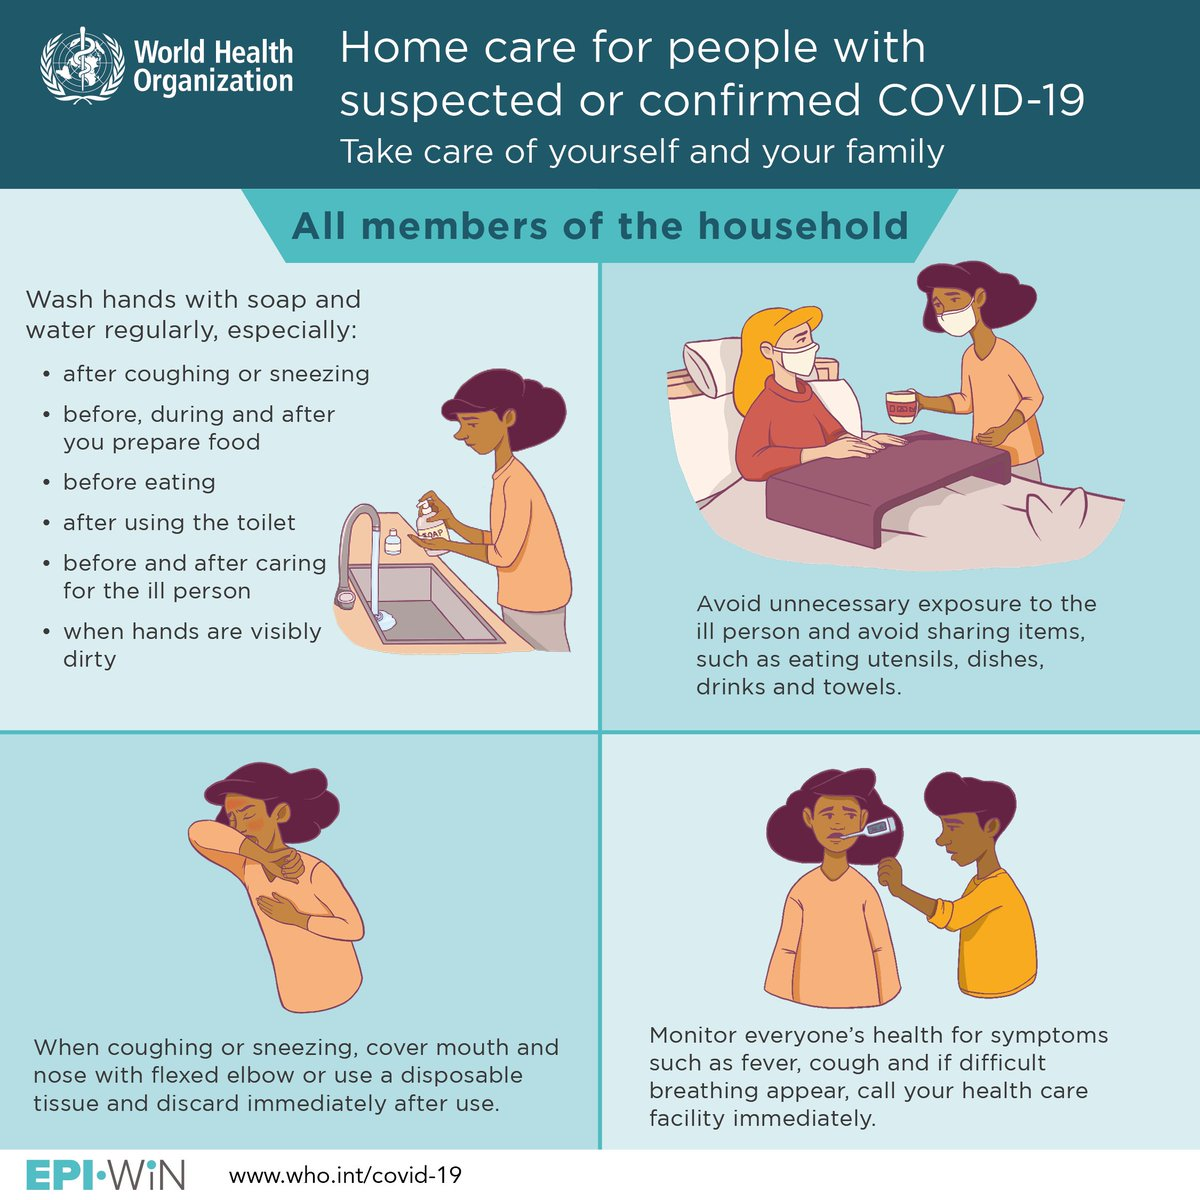 World Health Organization Who On Twitter When Coughing Or Sneezing All Members Of A Household With People With Suspected Or Confirmed Covid19 Should Cover Mouth And Nose With Flexed Elbow Or Use